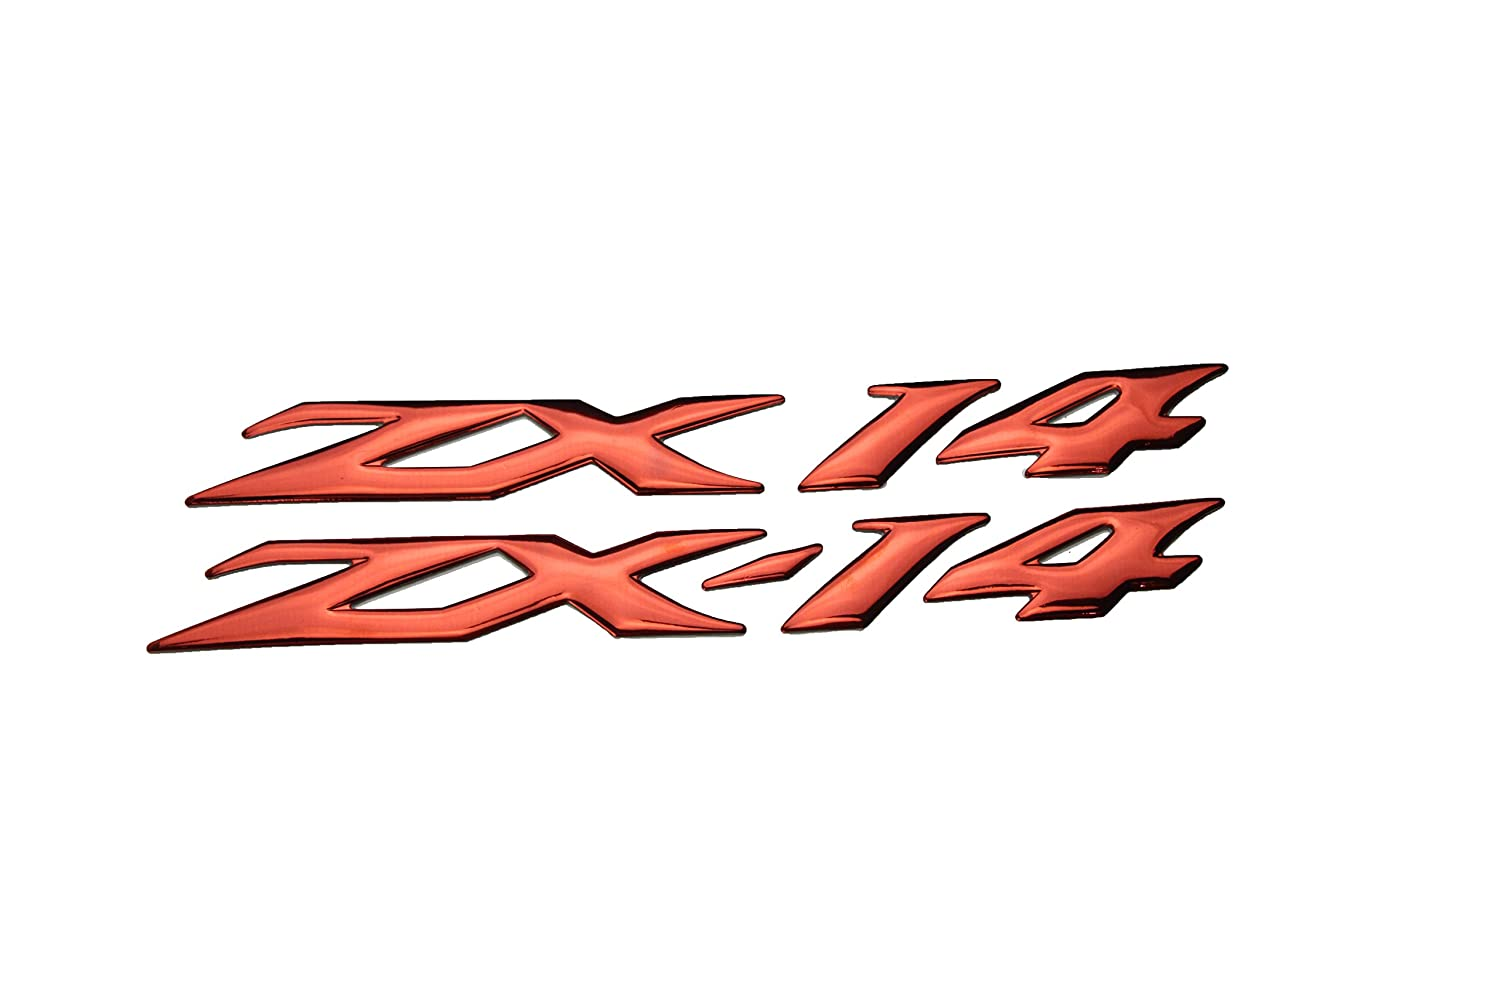 PRO-KODASKIN Motorcycle 3D Raise ZX-14 Emblem Sticker Decal for Kawasaki ZX-14R ZZR1400 (Silver)